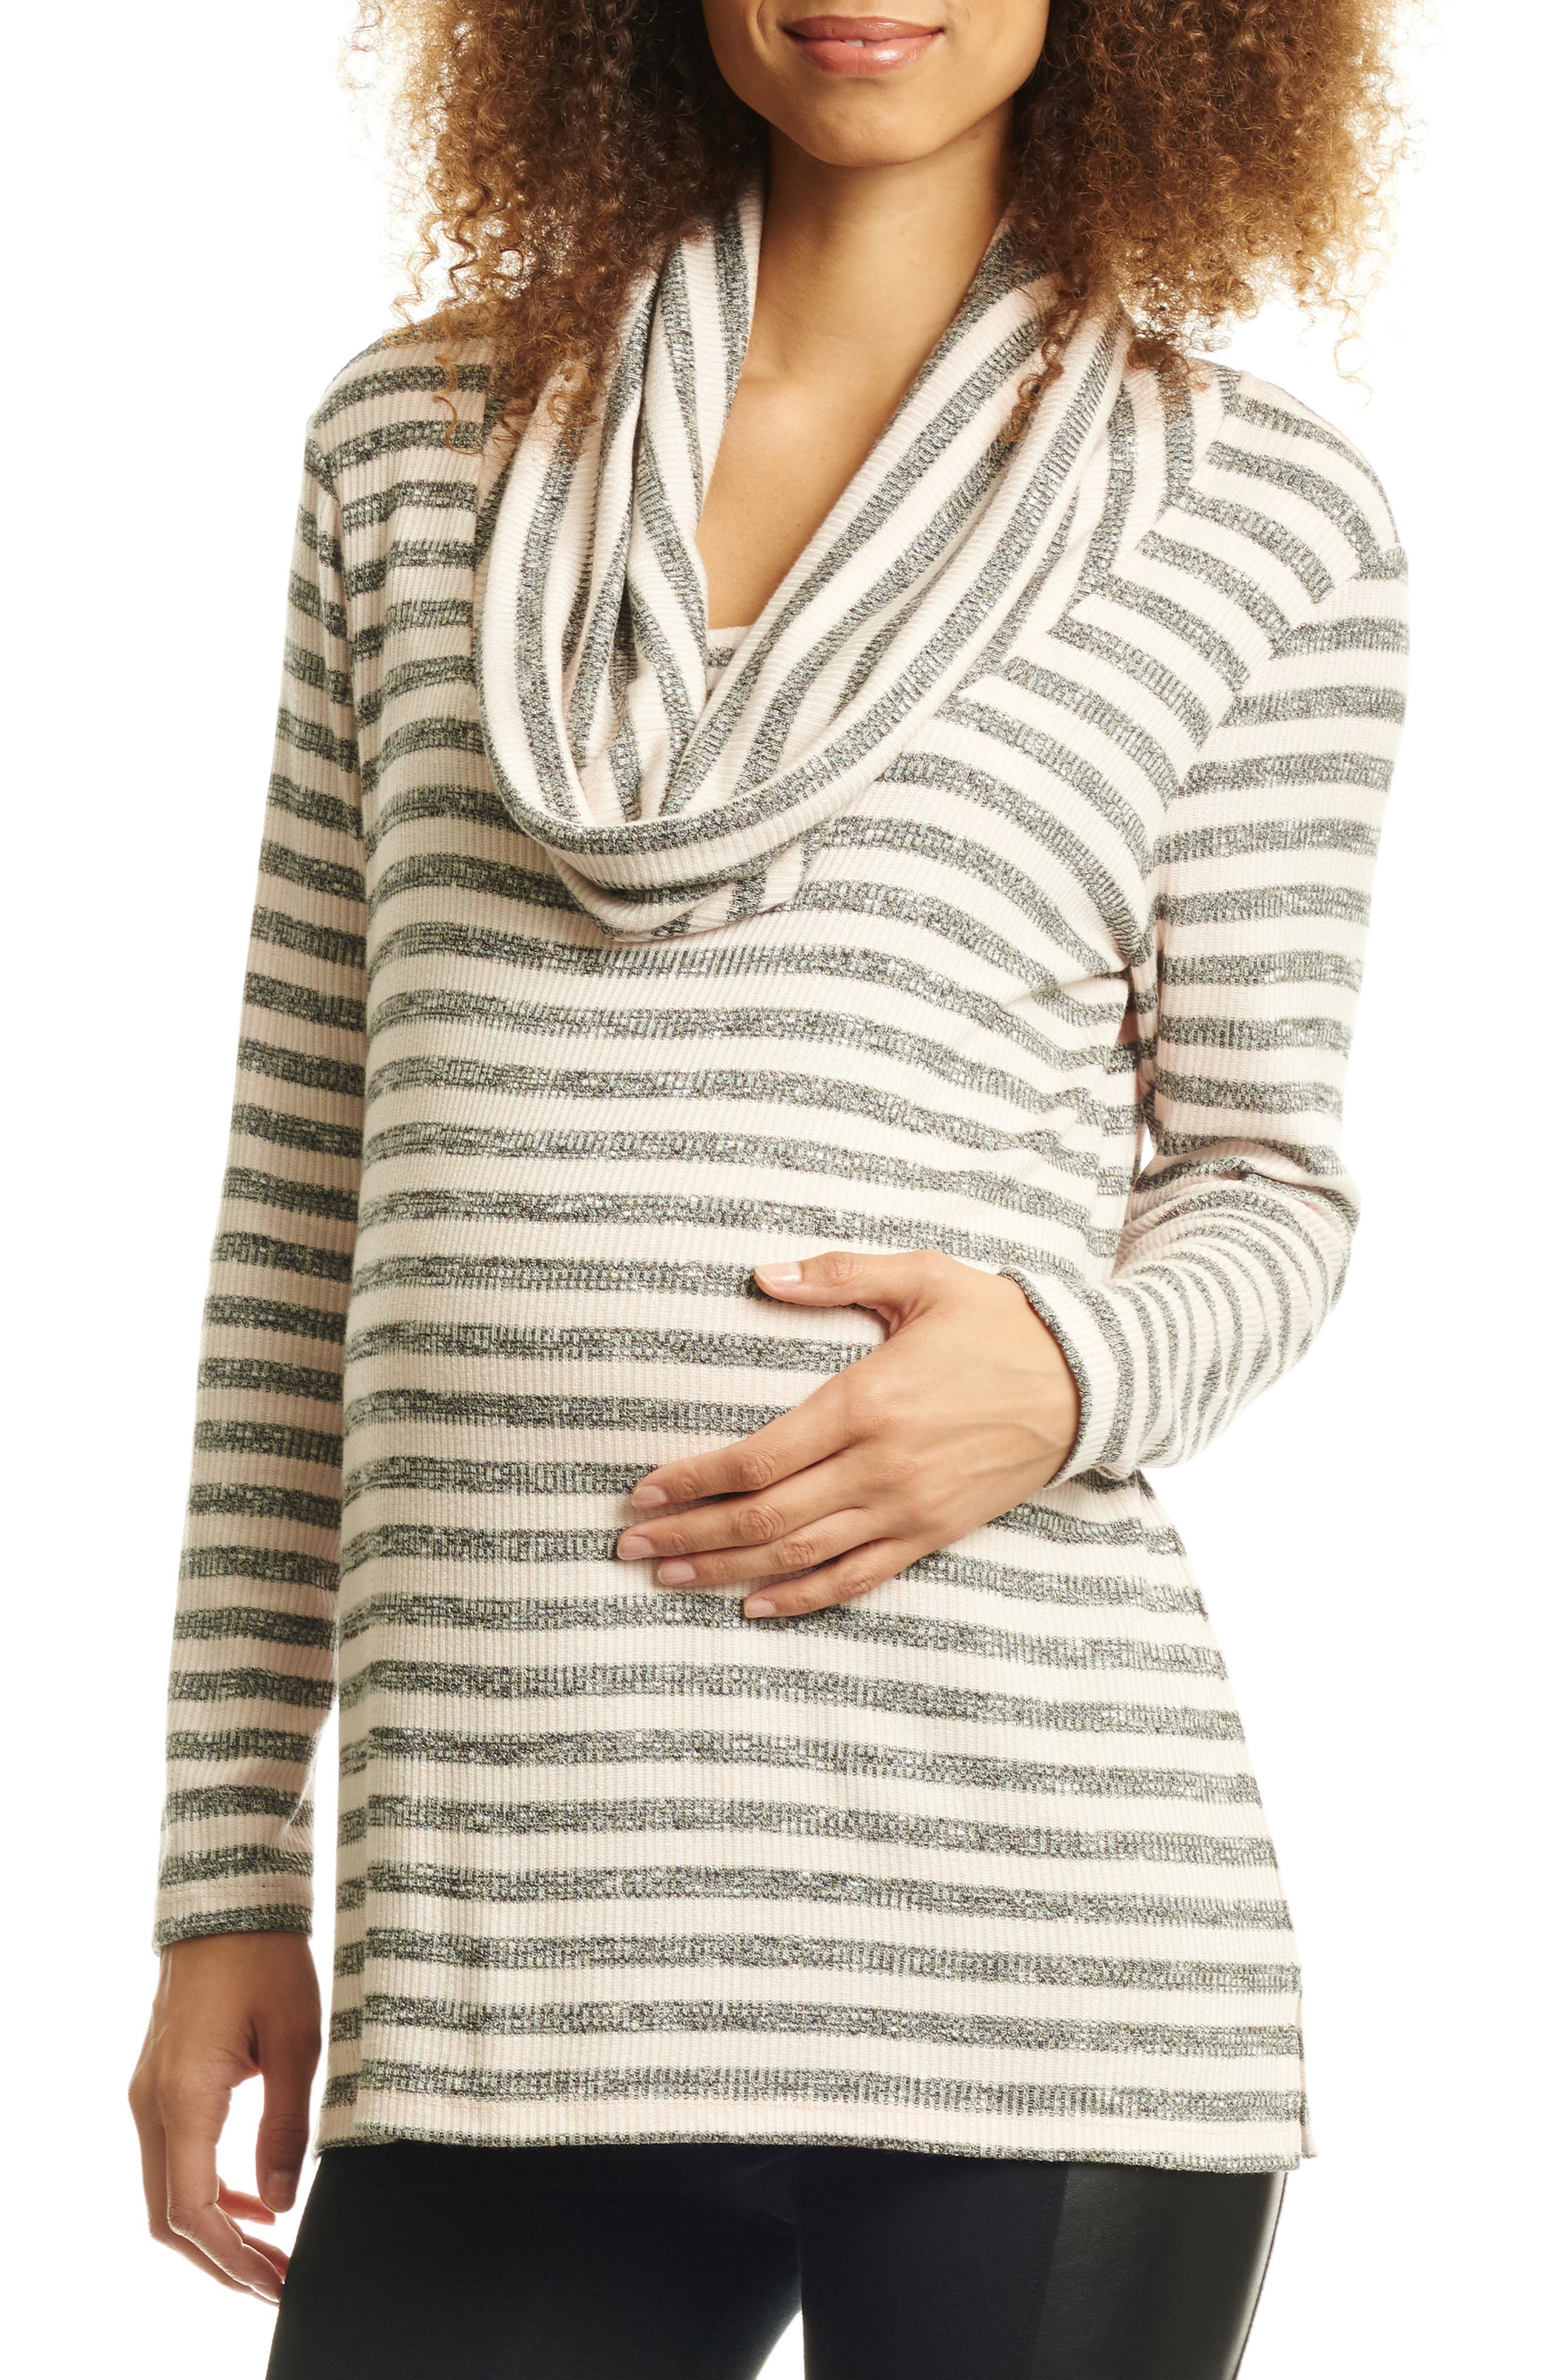 EVERLY GREY, Reina Cowl Neck Maternity/Nursing Top, Main thumbnail 1, color, CHARCOAL STRIPE